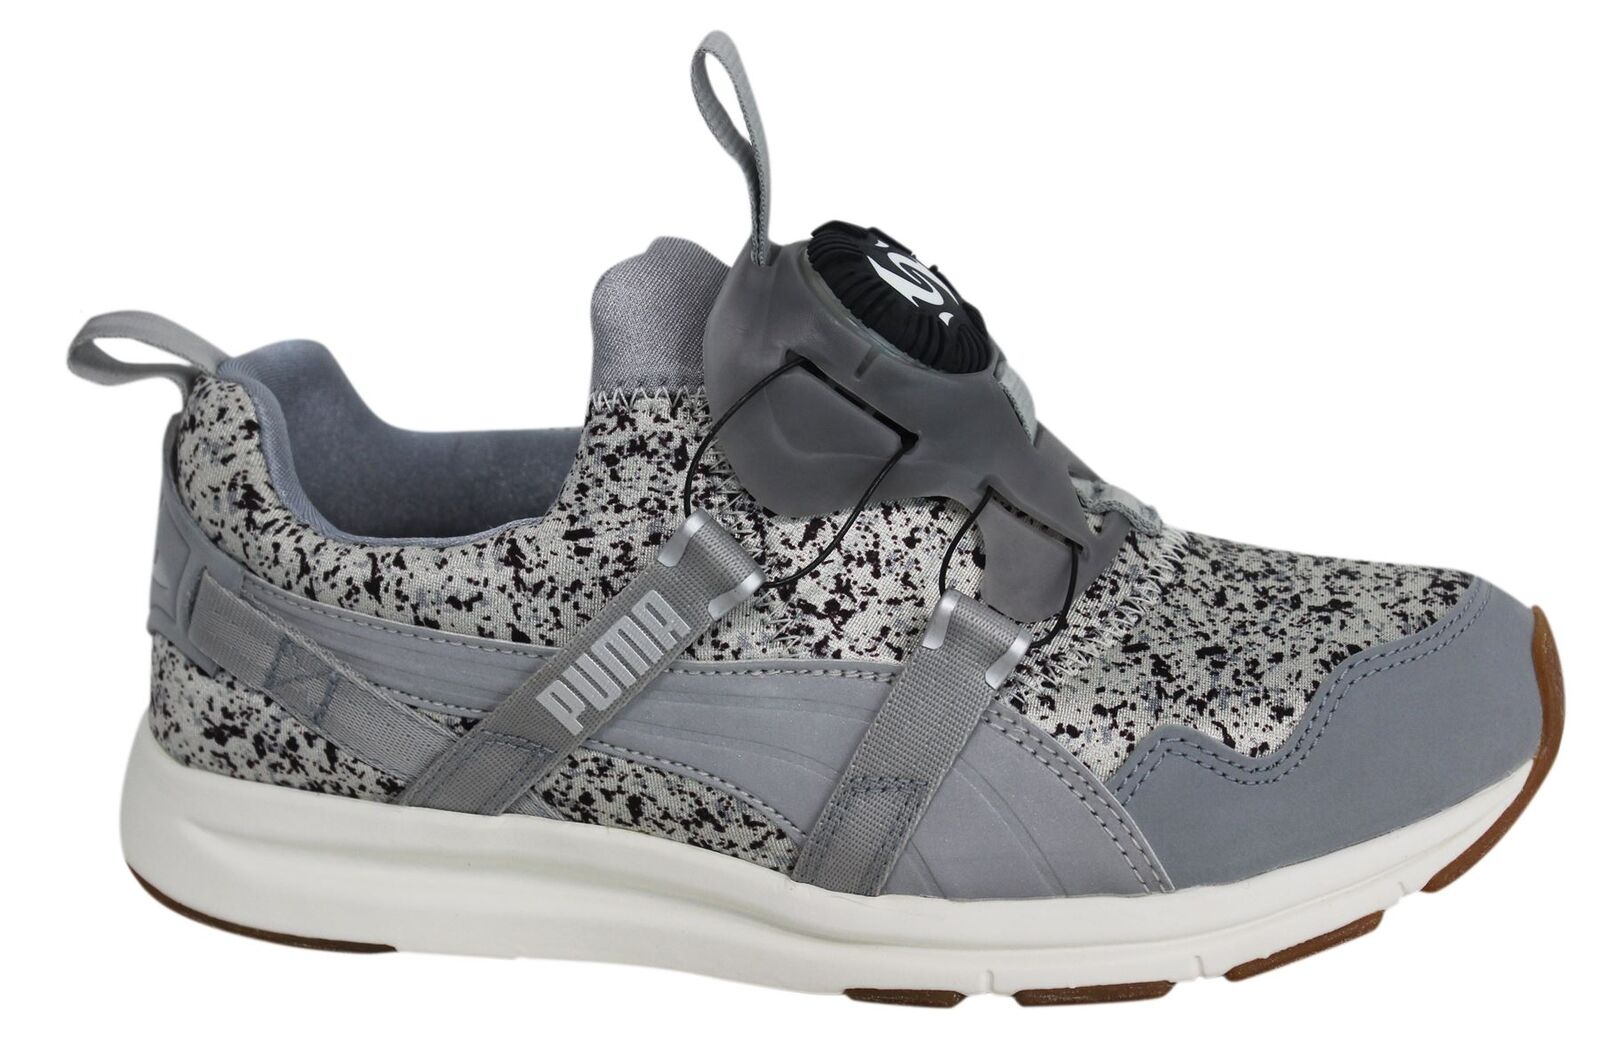 Puma Disc NC Scatter Gris Wo Hommes Trainers 357288 01 M11